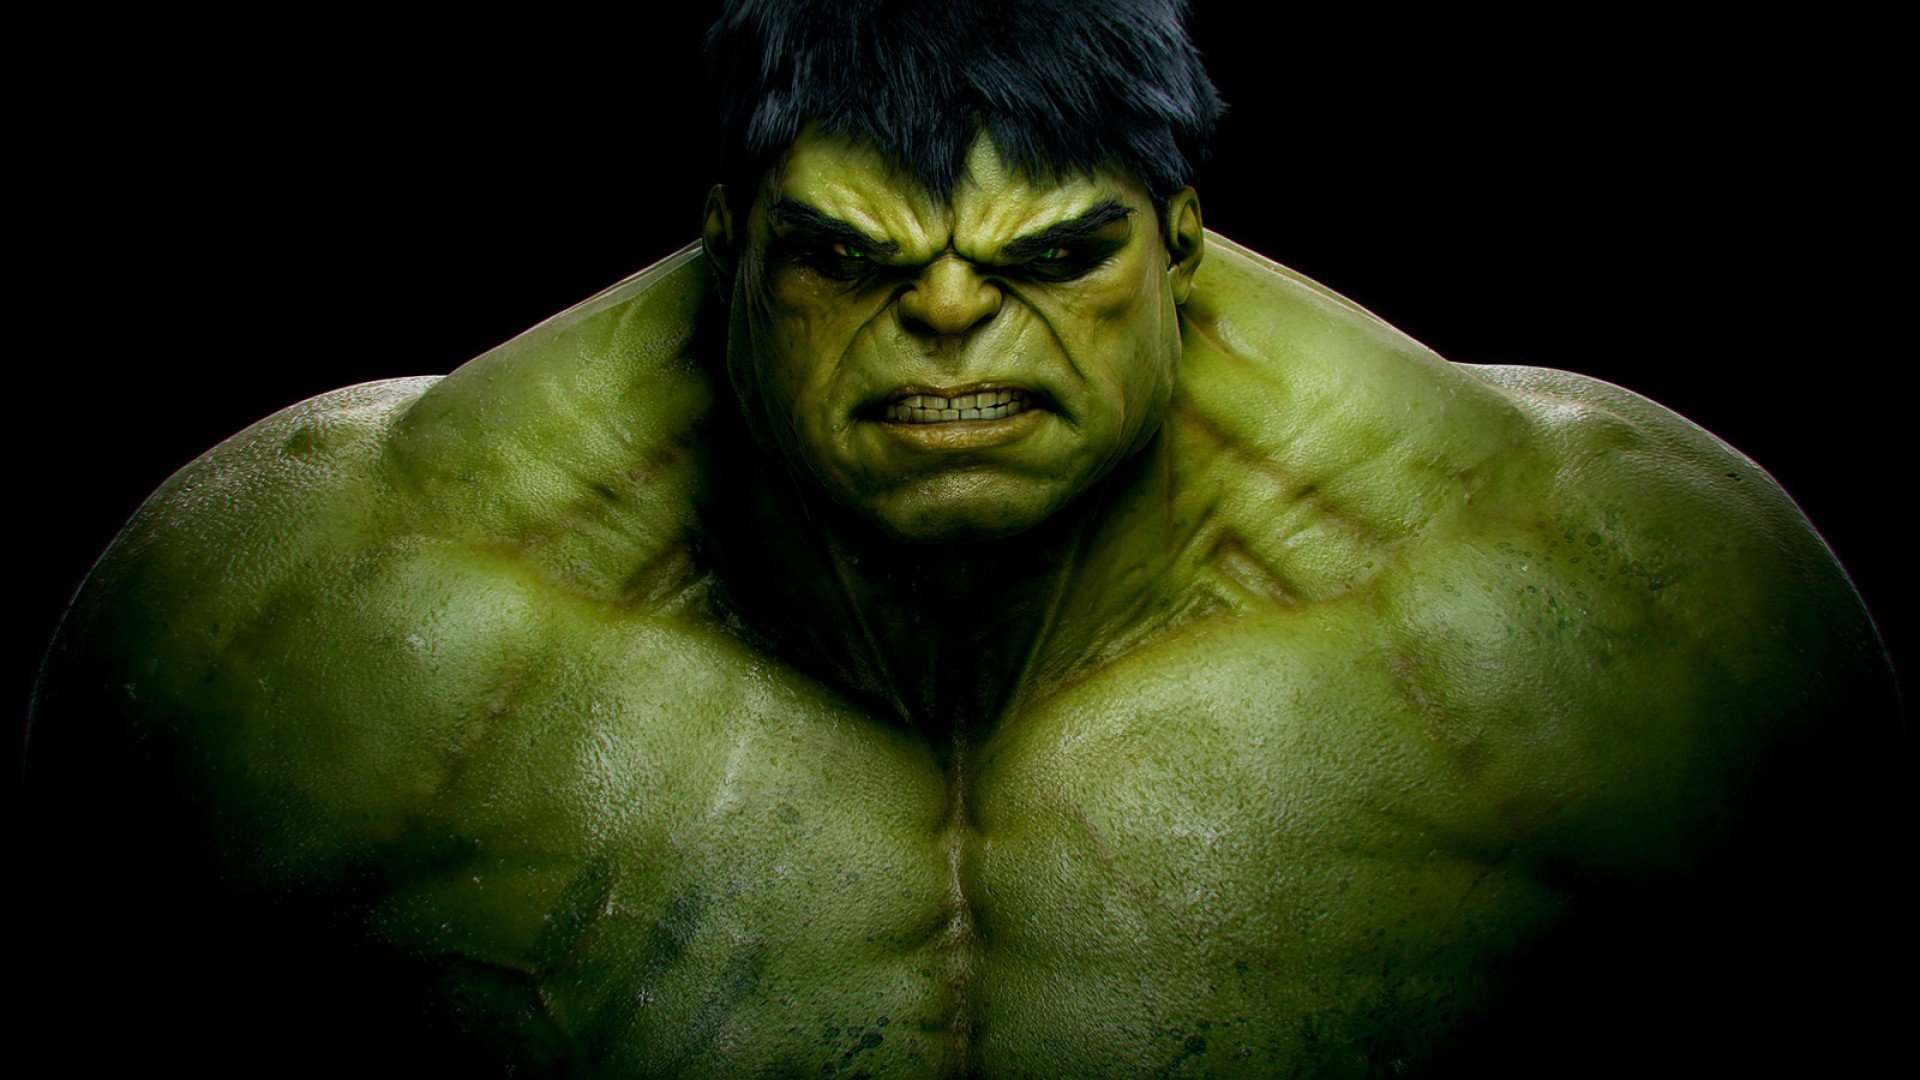 hulk 4K wallpapers for your desktop or mobile screen and easy 1920x1080